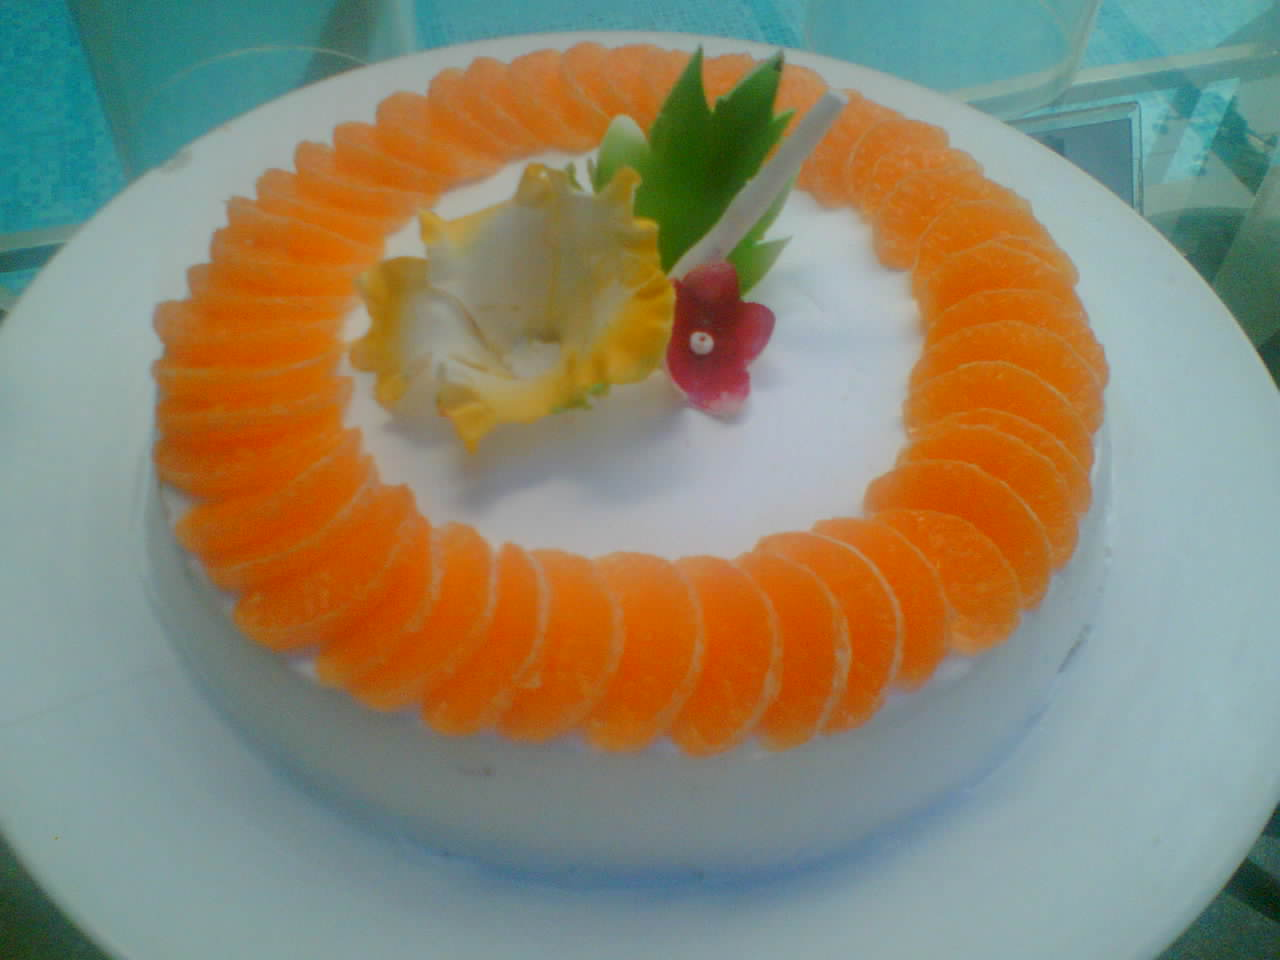 CHEF RAGHU: CREAMY ORANGE CHEESECAKE BY CHEF RAGHU